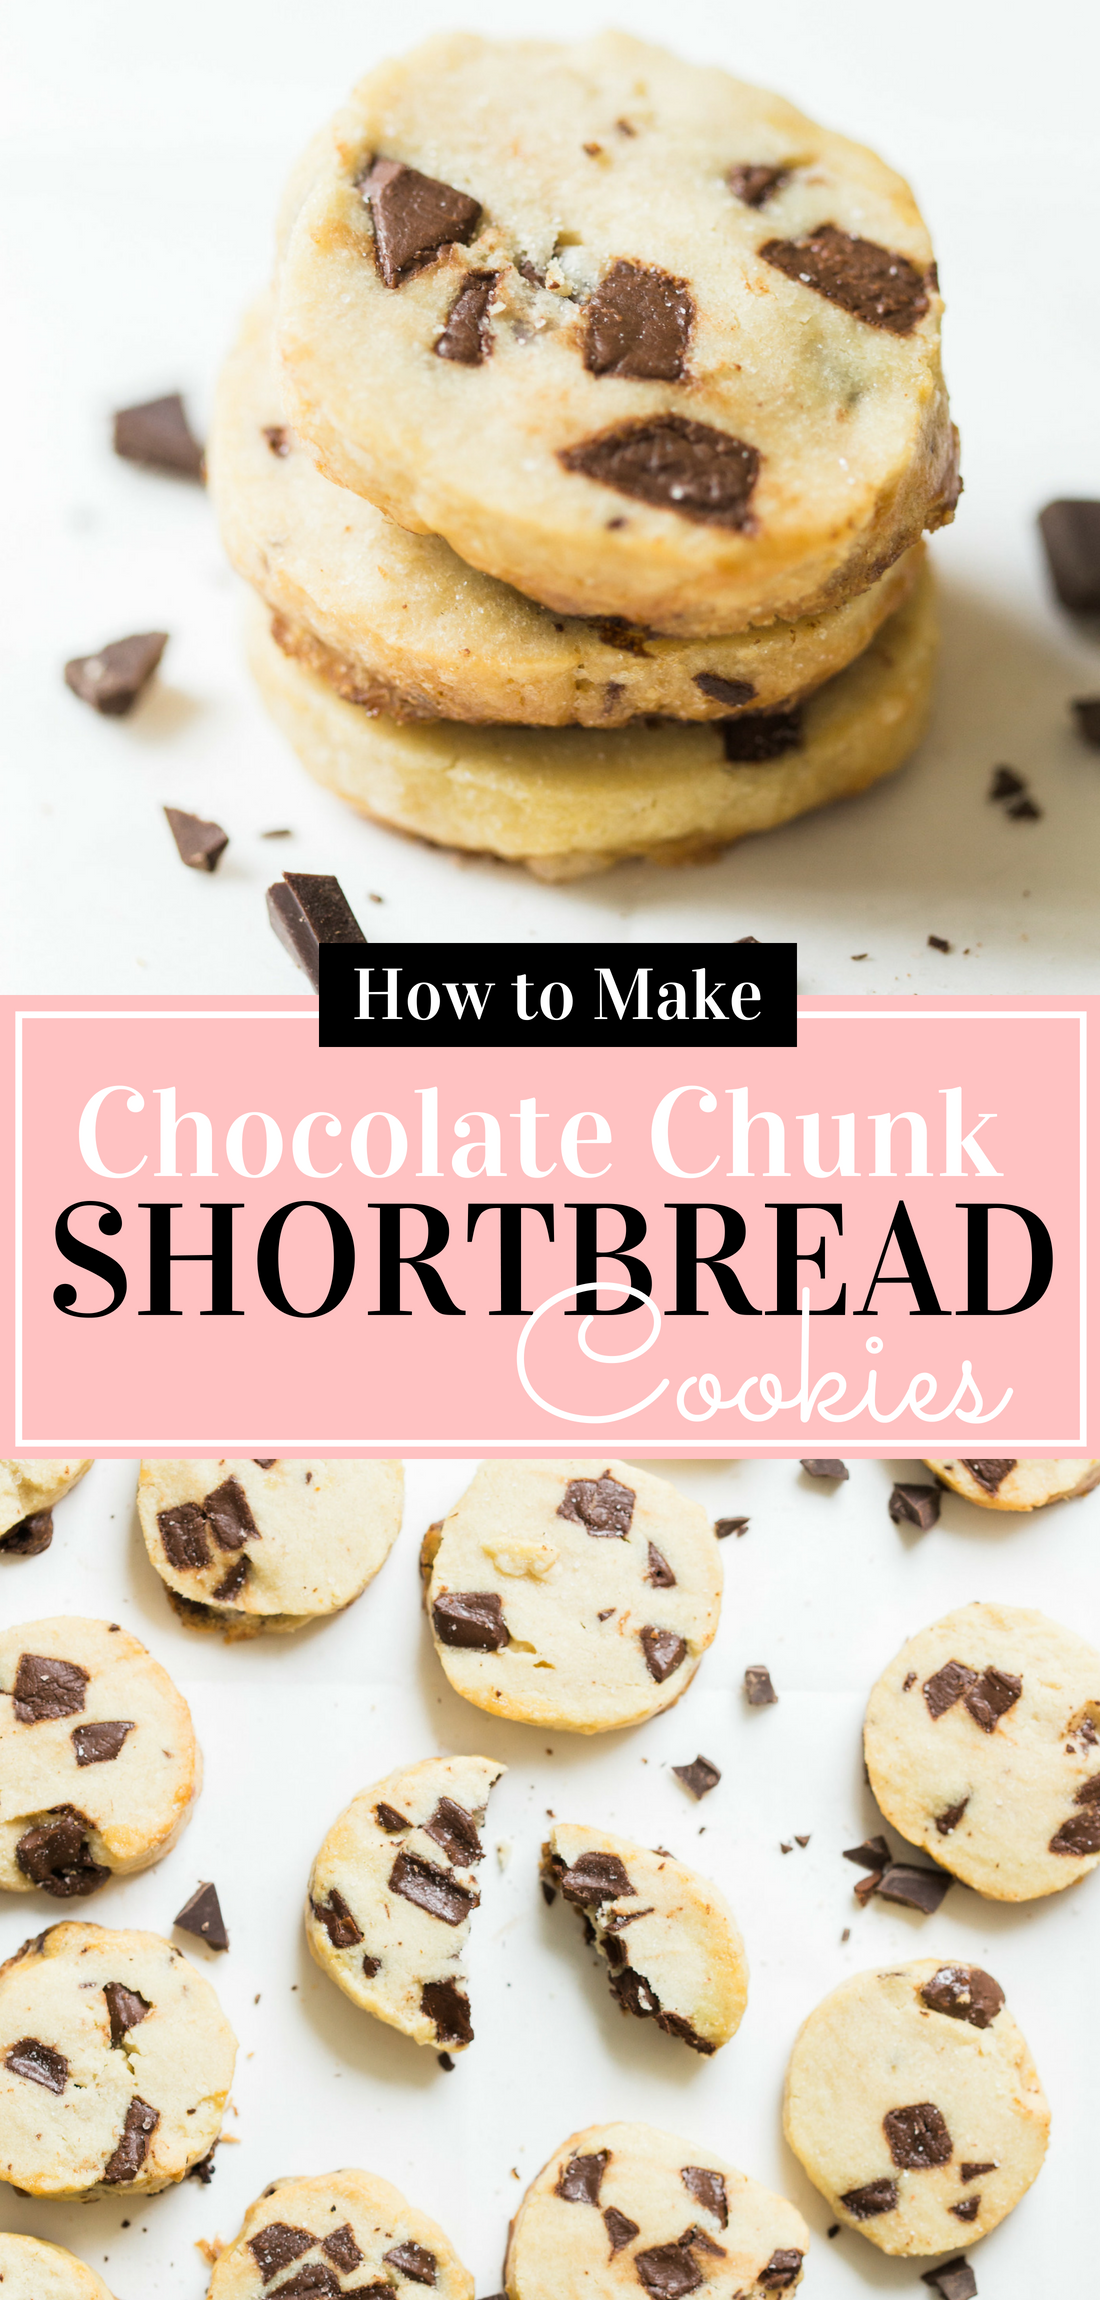 Looking for a crazy amazing cookie #recipe? You HAVE to make the super famous salted butter chocolate chunk shortbread cookies from Alyson Roman that are blowing up Instagram these days ... and I'm showing you how! #shortbreadcookies #chocolatechunkshortbreadcookies #cookies #cookierecipe | glitterinc.com | @glitterinc